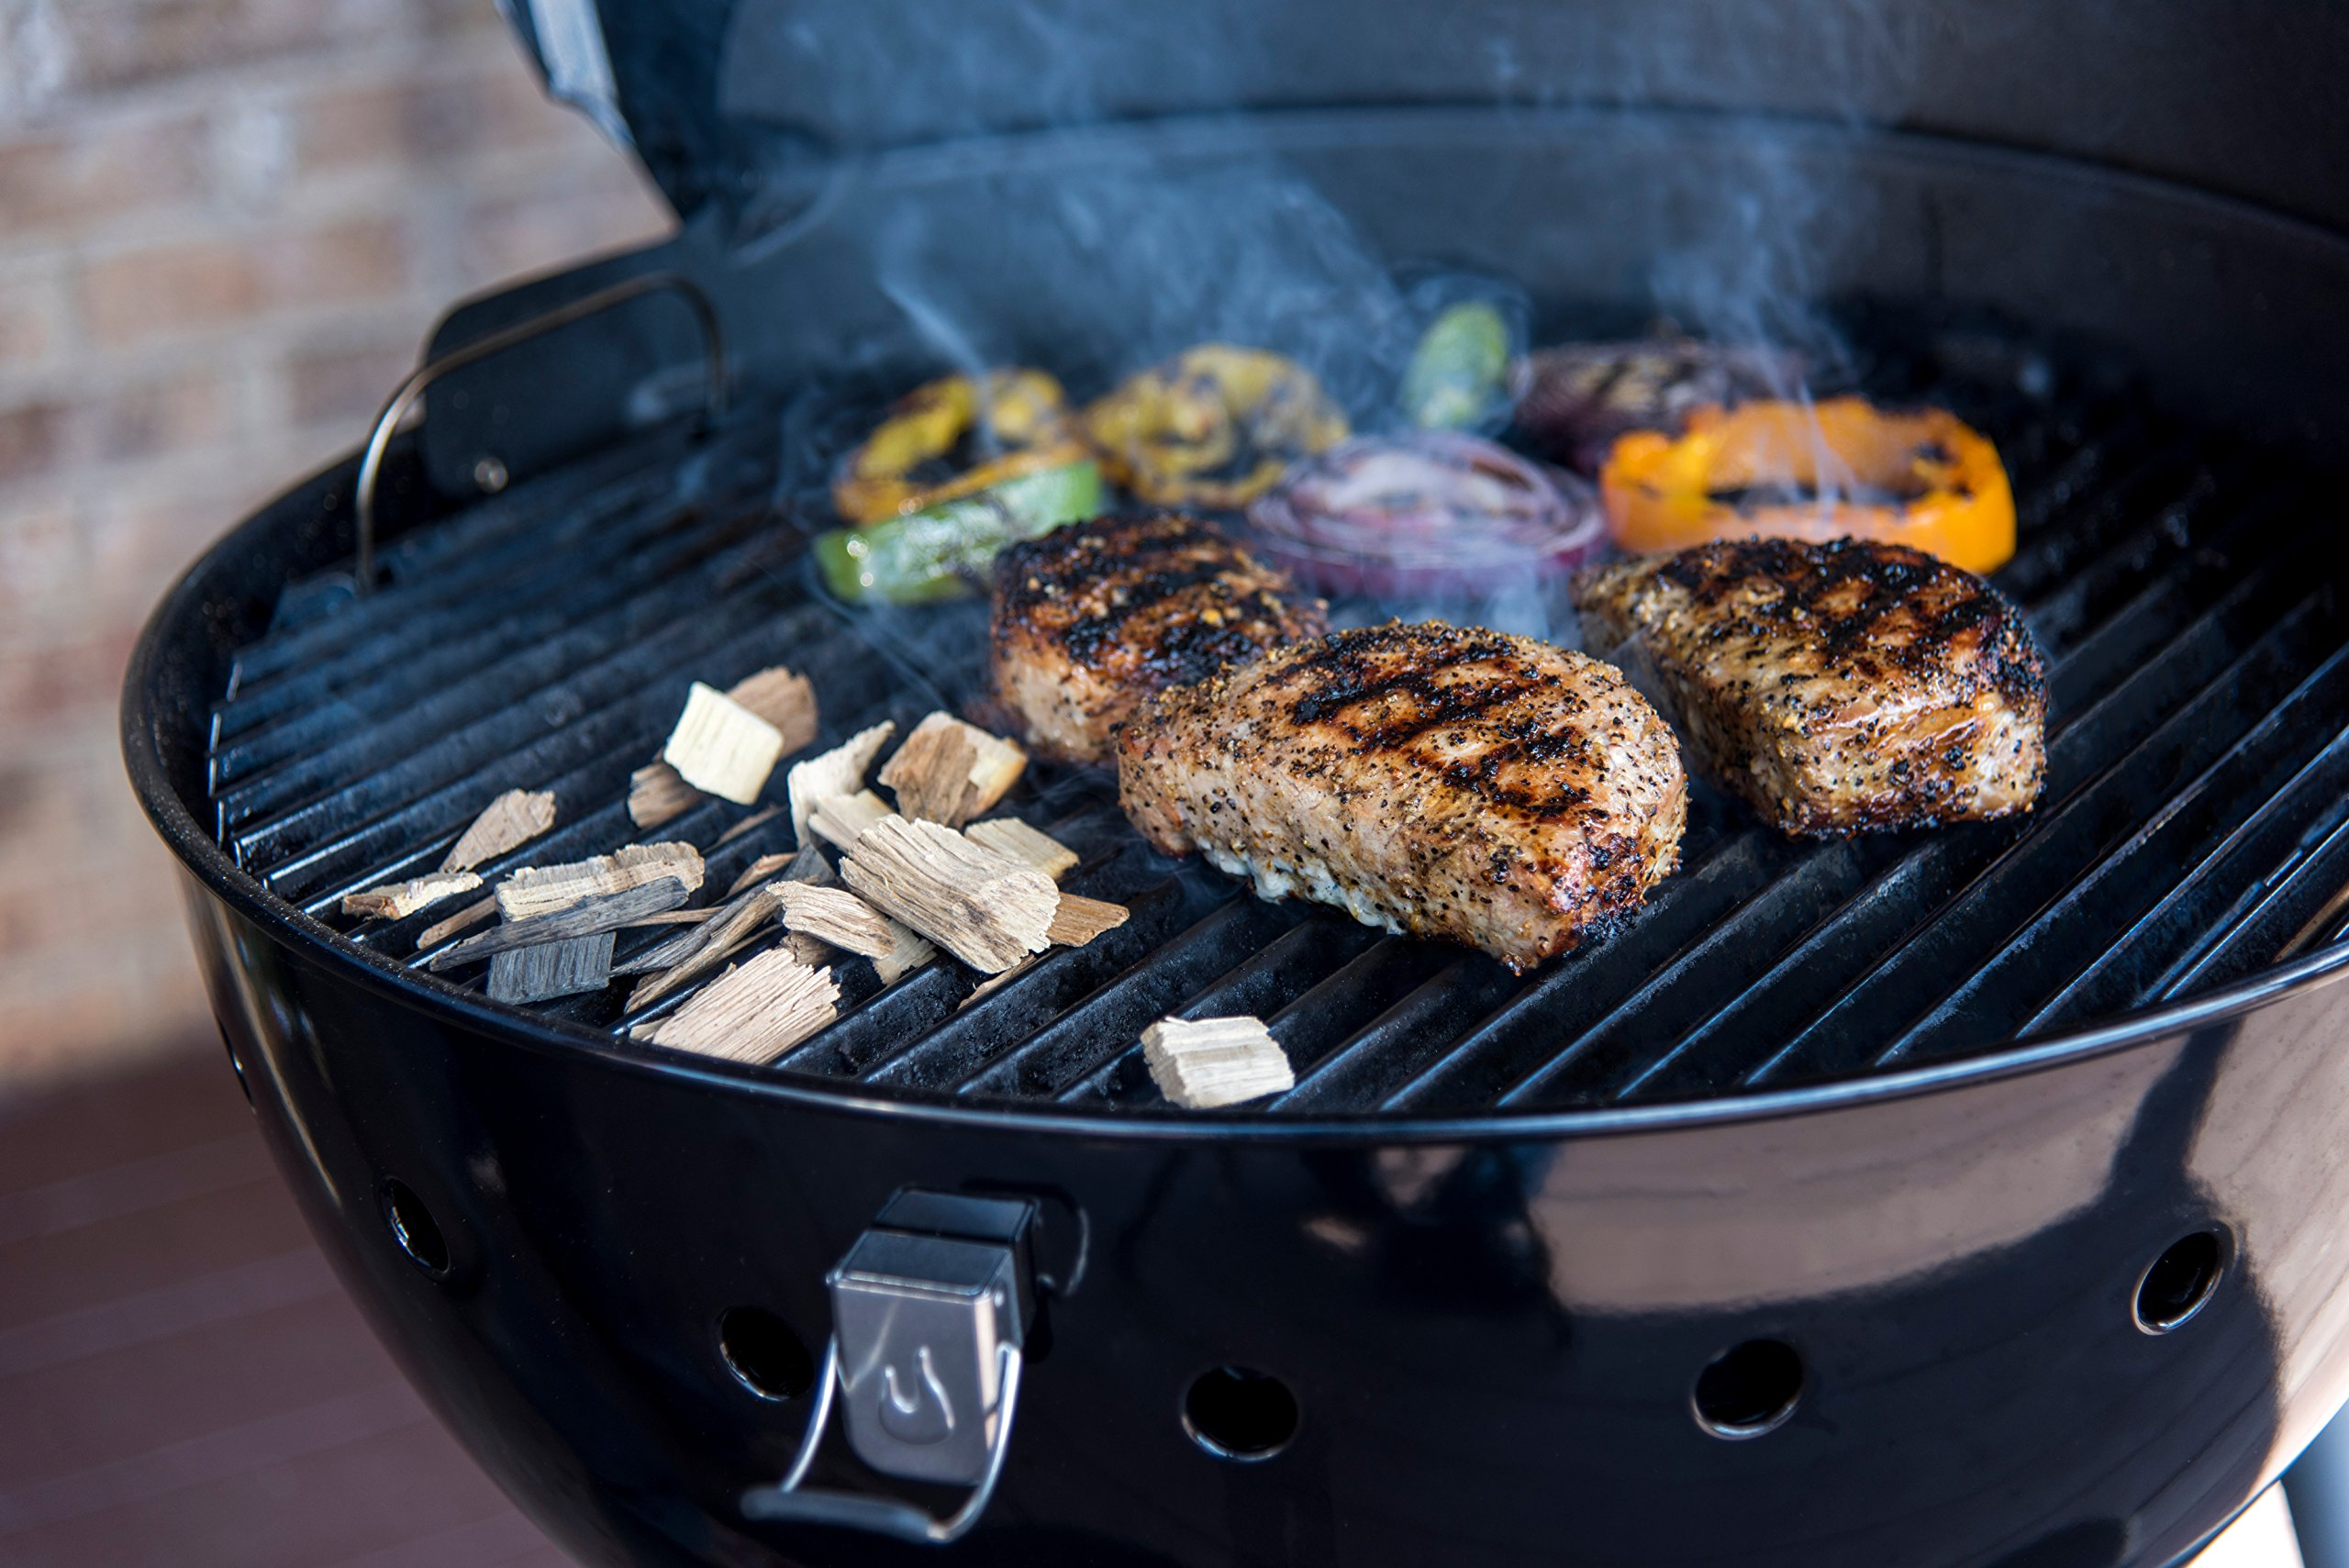 Char-Broil TRU-Infrared Kettleman Charcoal Grill, 22.5 Inch by Char-Broil (Image #6)